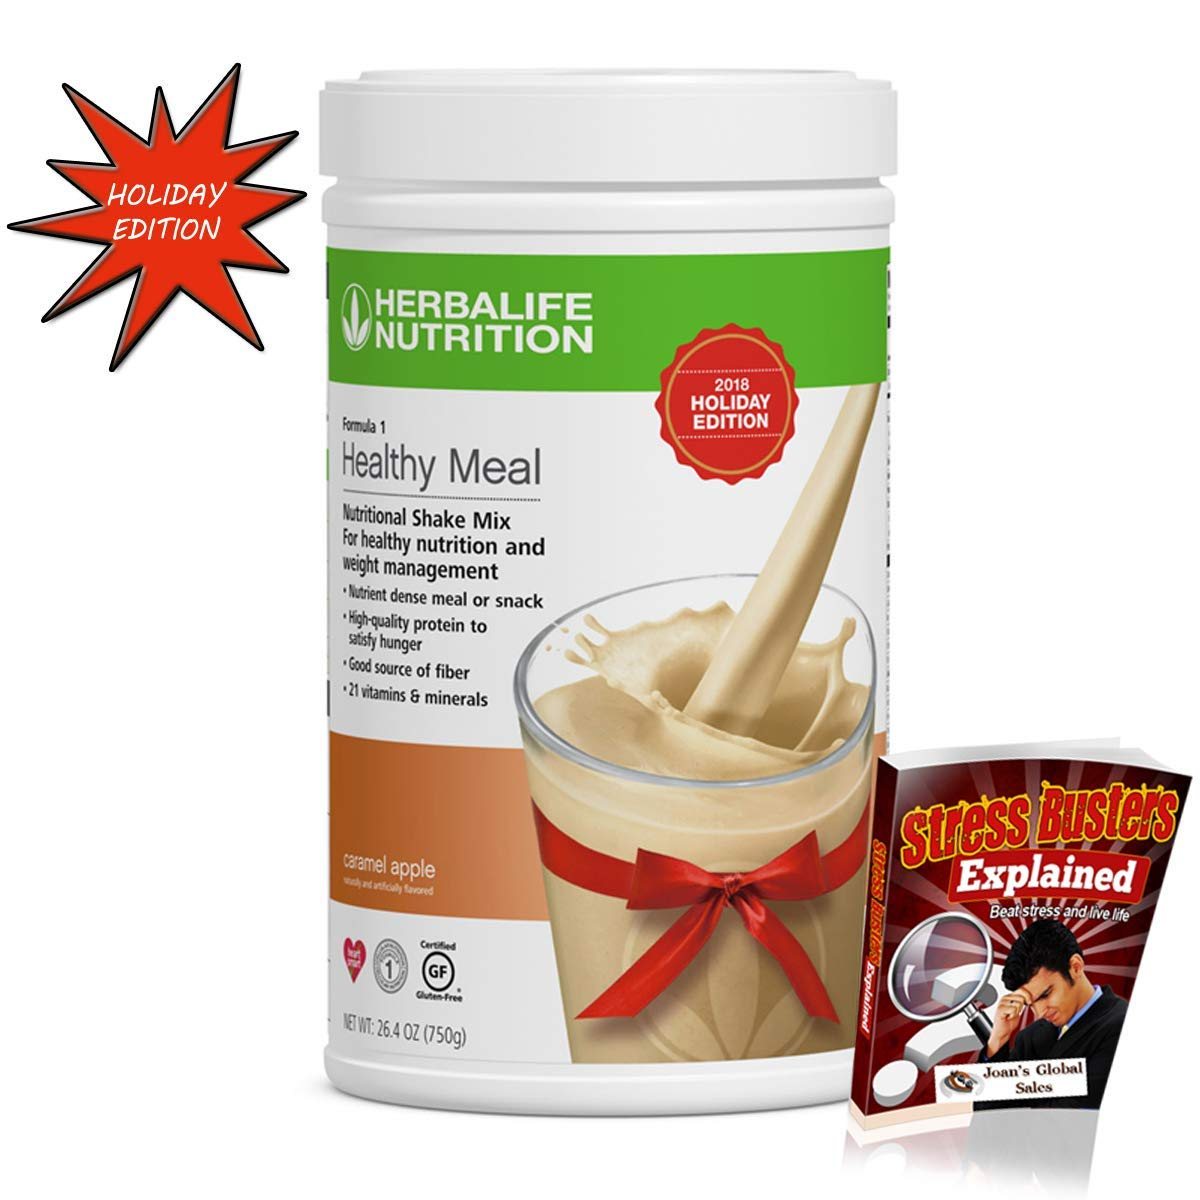 Lose Weight Healthy Meal Fórmula 1 Nutritional Shake Mix ...